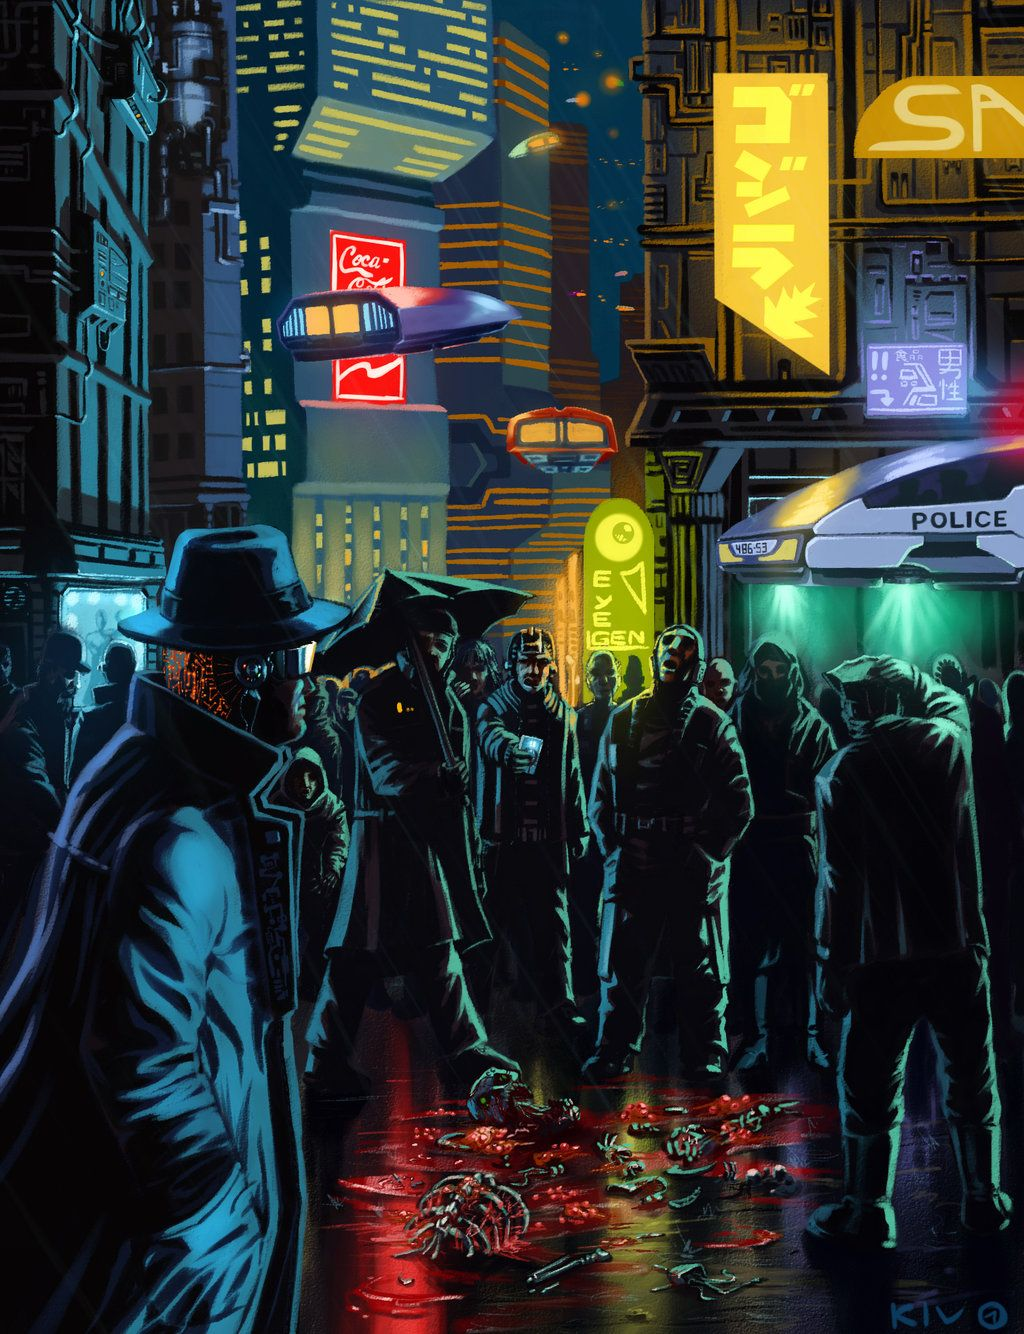 Cyberpunk by Decepticoin. Cyberpunk Art gosstudio .★ We